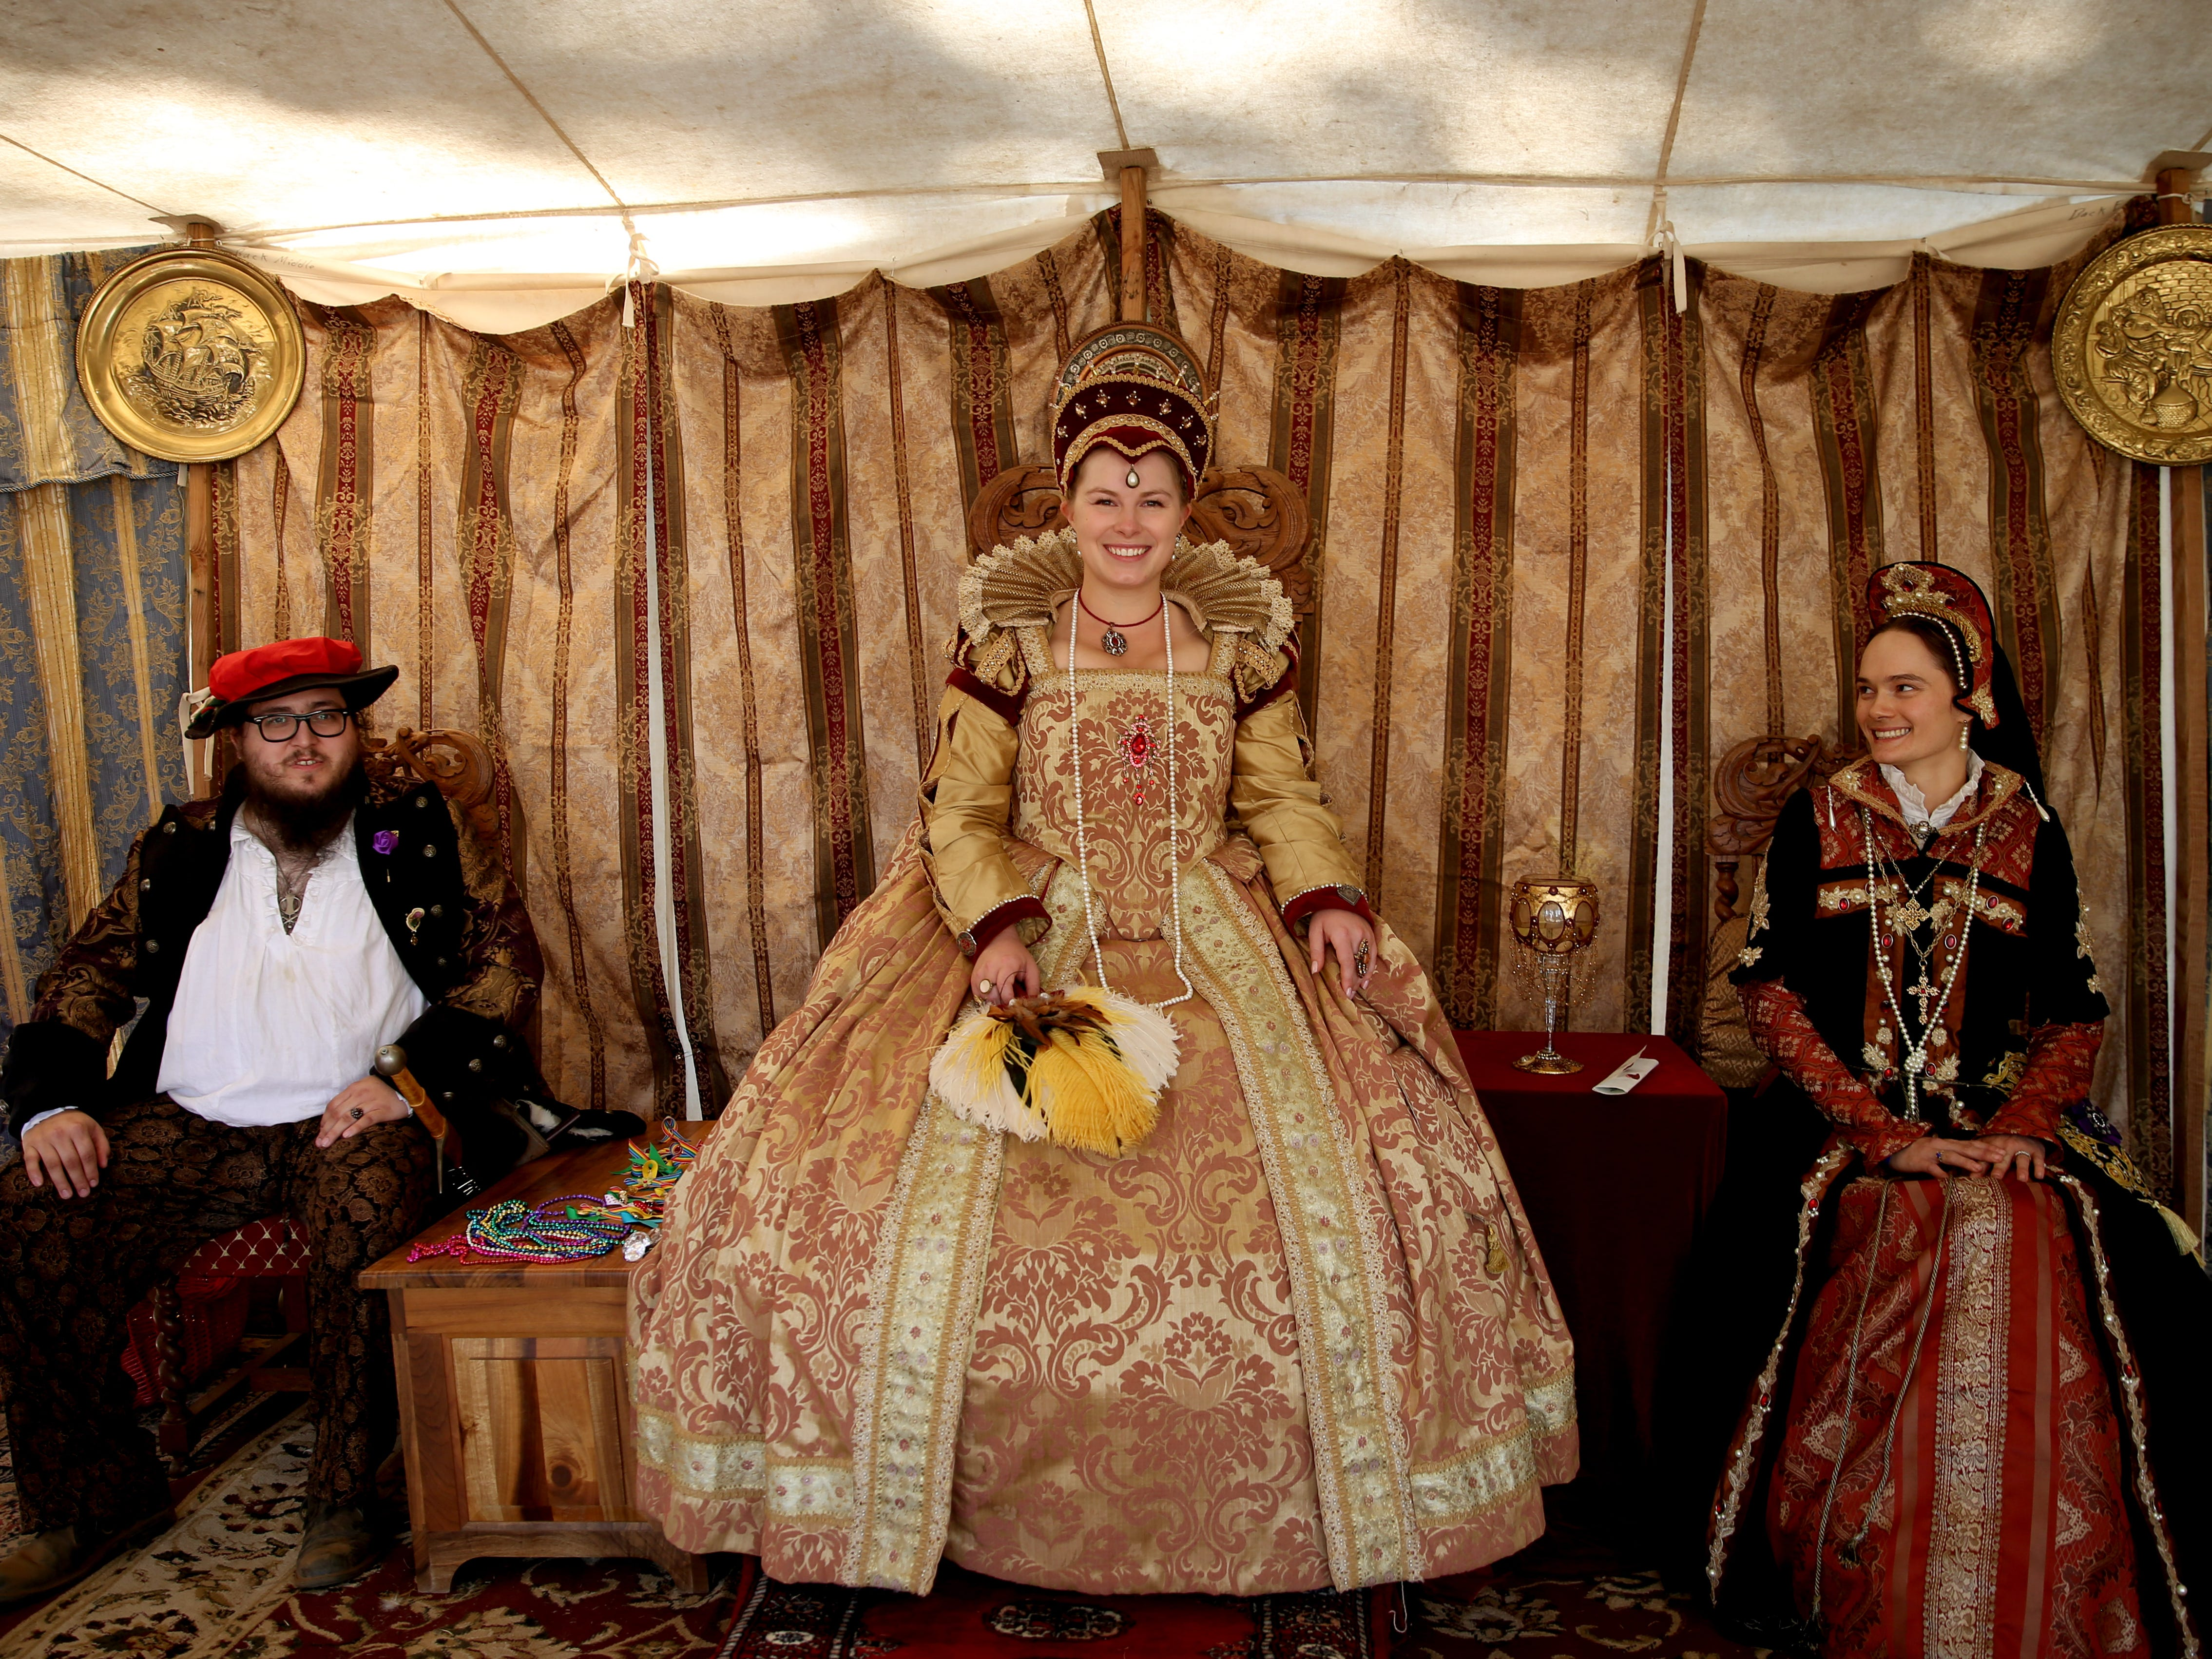 Alison White, of Wilsonville, as Queen Elizabeth I, with her court during the Canterbury Renaissance Faire near Silverton on Saturday, July 21, 2018. The faire continues July 22, 28 and 29.